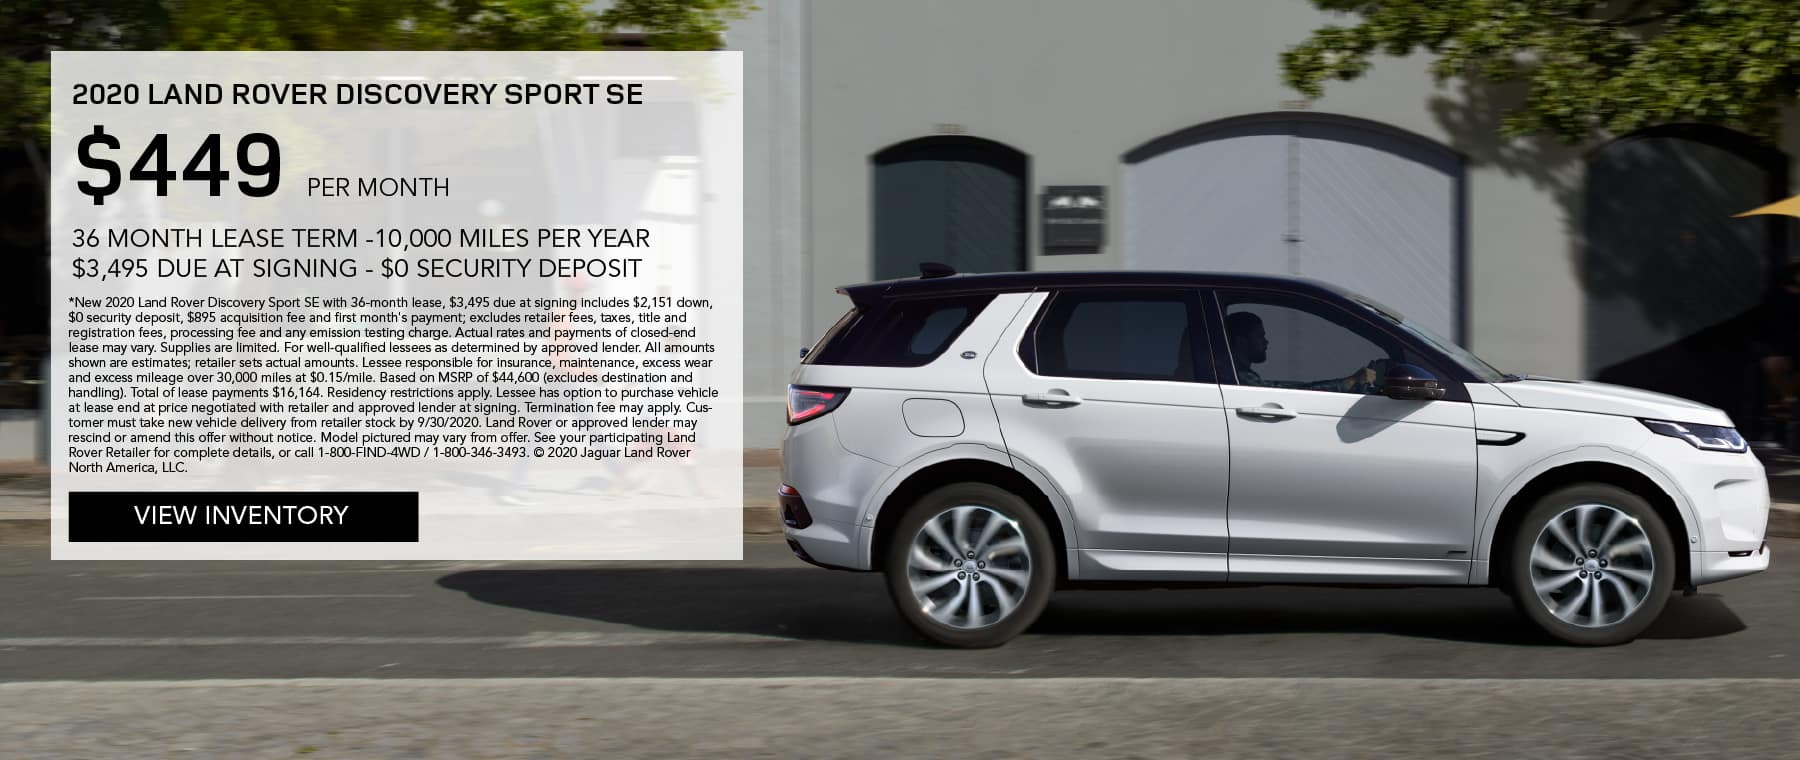 2020 LAND ROVER DISCOVERY SPORT SE. $449 PER MONTH. 36 MONTH LEASE TERM. $3,495 CASH DUE AT SIGNING. $0 SECURITY DEPOSIT. 10,000 MILES PER YEAR. EXCLUDES RETAILER FEES, TAXES, TITLE AND REGISTRATION FEES, PROCESSING FEE AND ANY EMISSION TESTING CHARGE. ENDS 9/30/2020. VIEW INVENTORY. WHITE LAND ROVER DISCOVERY SPORT SE DRIVING DOWN ROAD IN CITY.